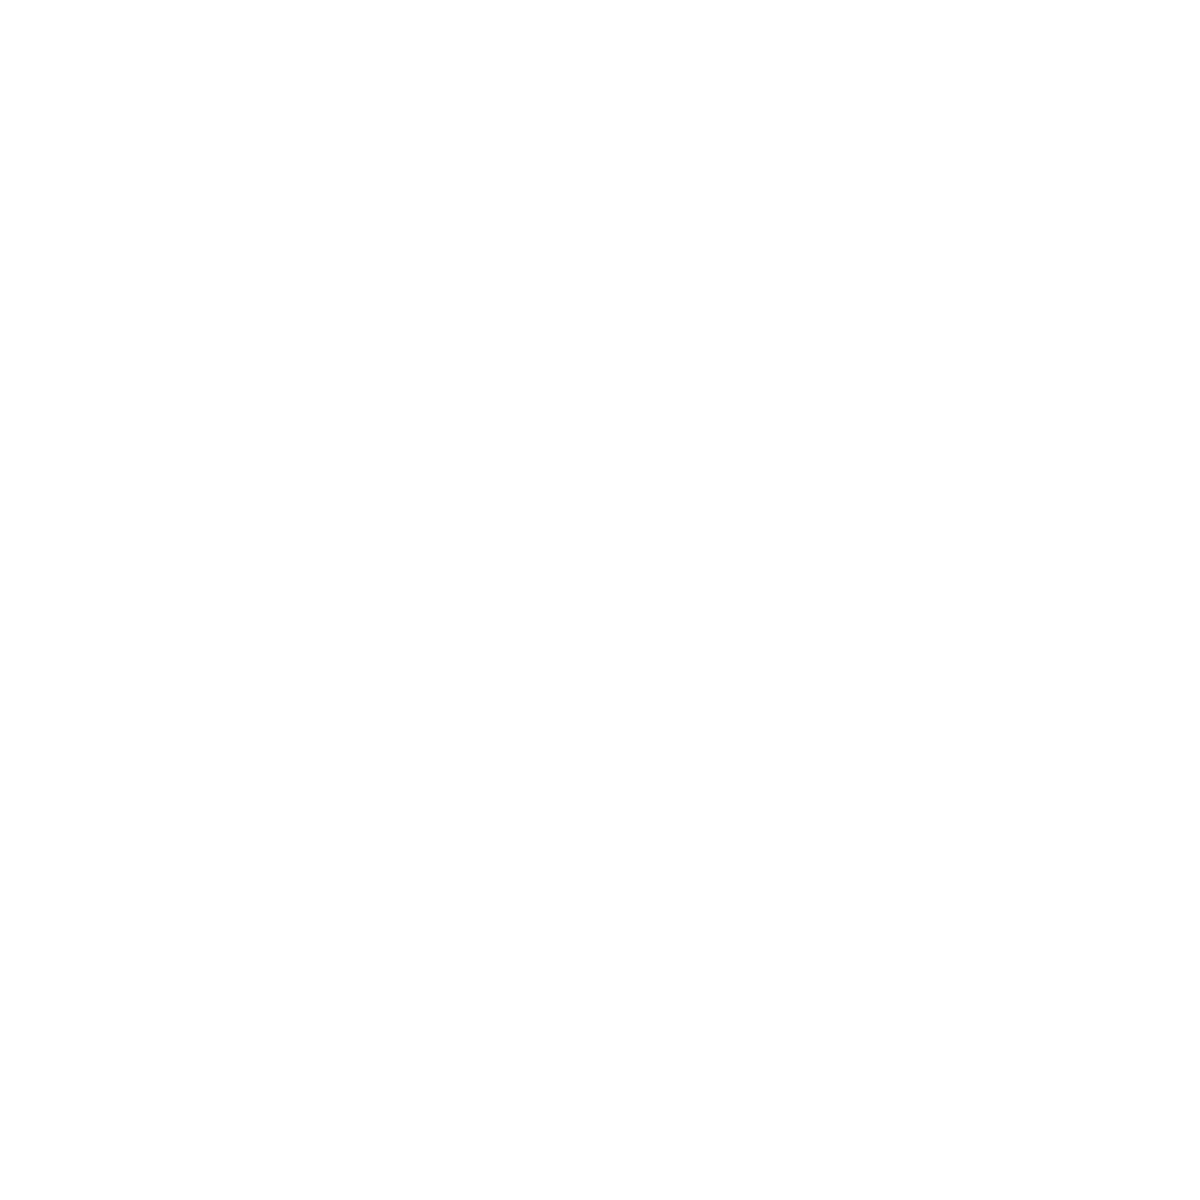 Head and shoulders of a person in a magnifying glass icon